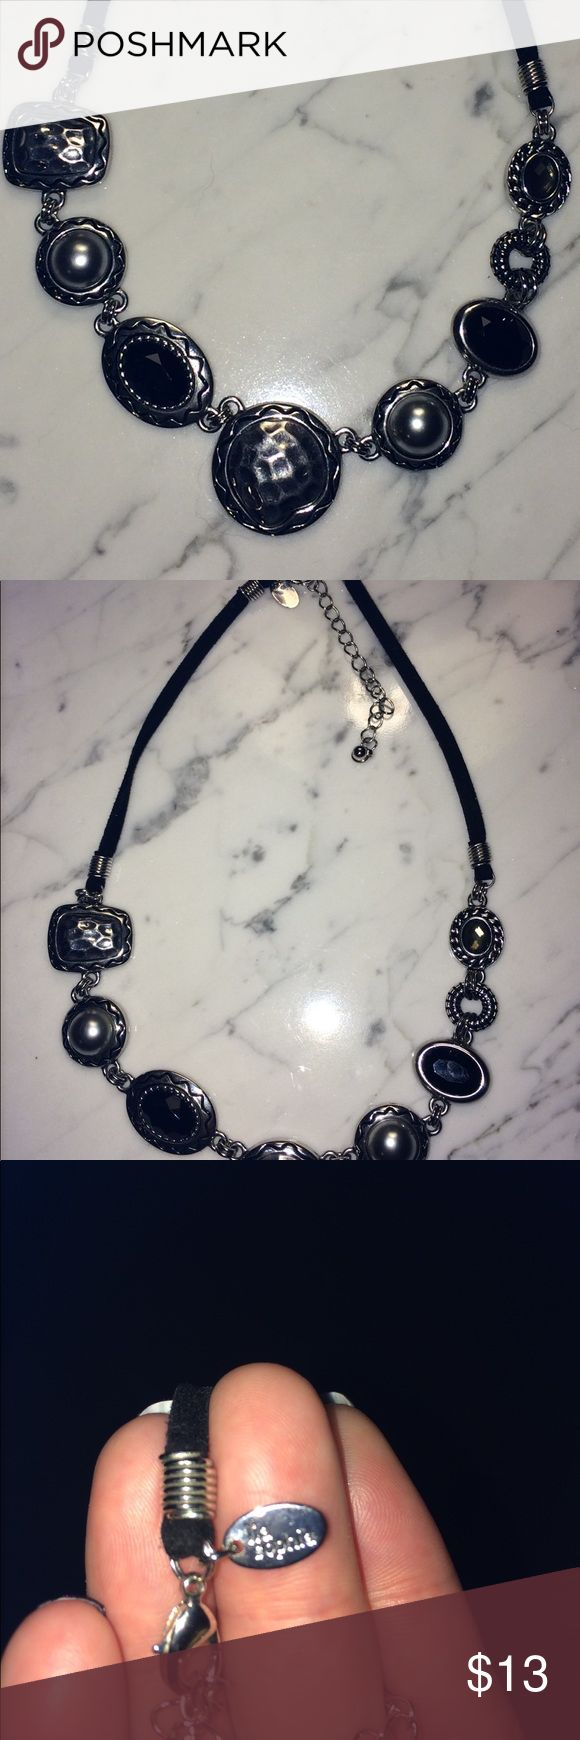 Lia Sophia silver and black adjustable necklace Lia Sophia silver and black adjustable necklace. Almost new, only wear a few time.  OFFERS WELCOMED!!!!!!  Lia Sophia Jewelry Necklaces